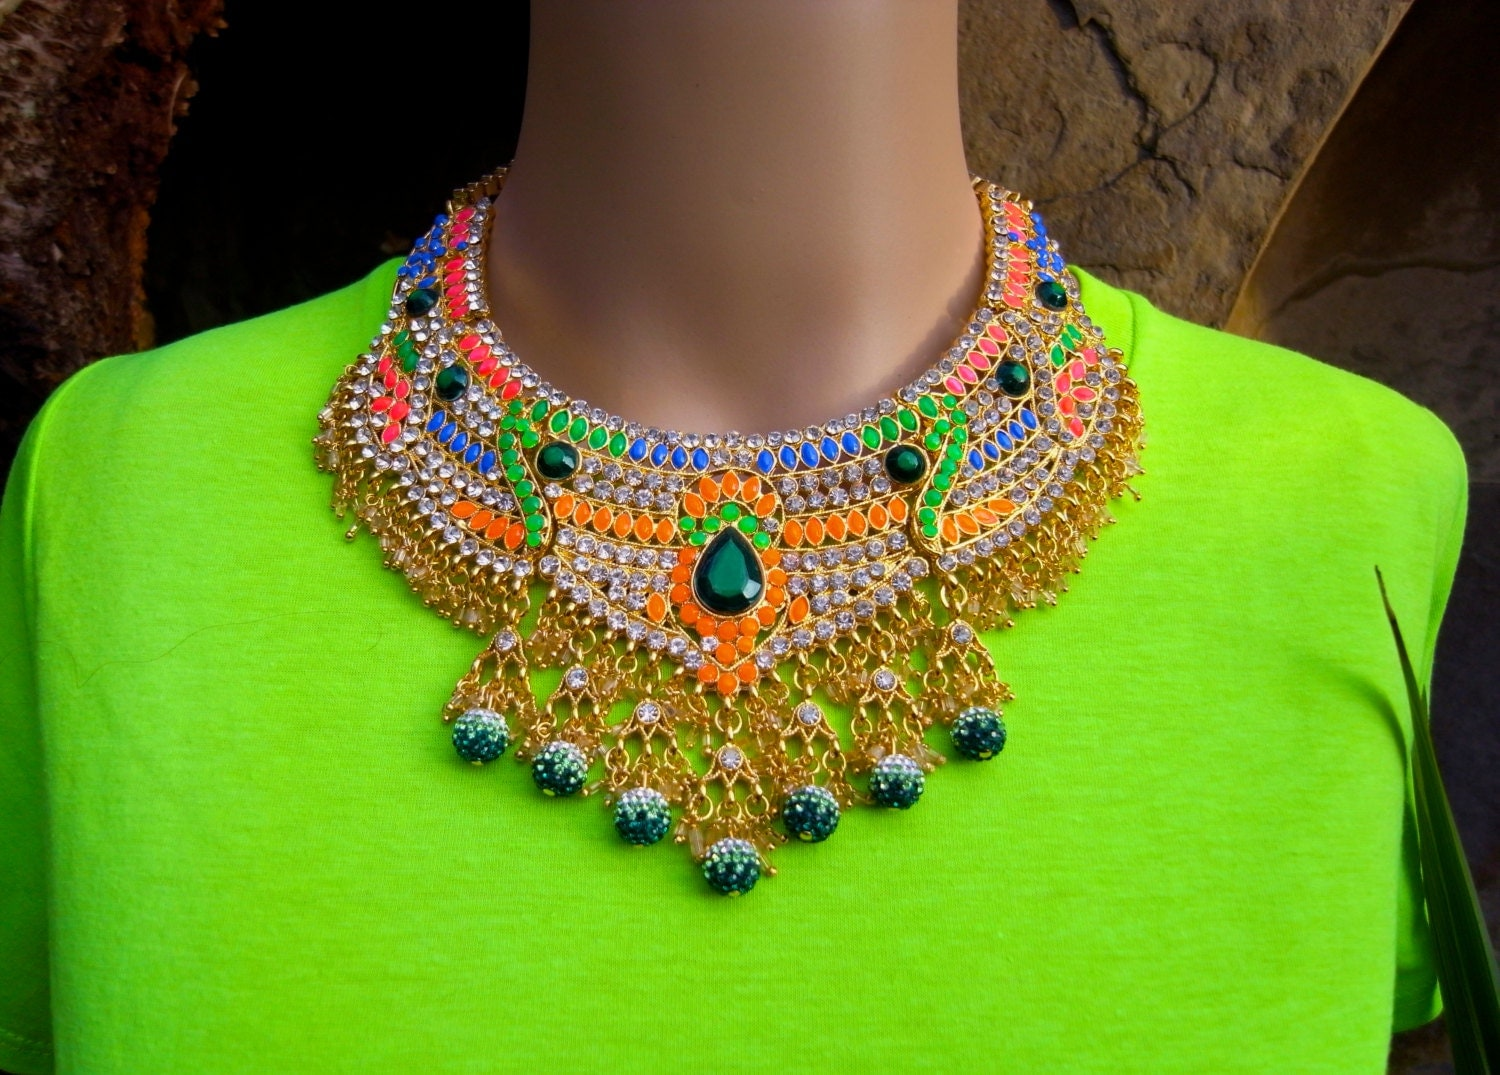 Paradise Carnivà le - Hand Painted Neon Rhinestone - bib - Statement Necklace - boho Jewelry - Ibiza - Festival Chic - one of a kind jewelry. - GreenEyeRocks